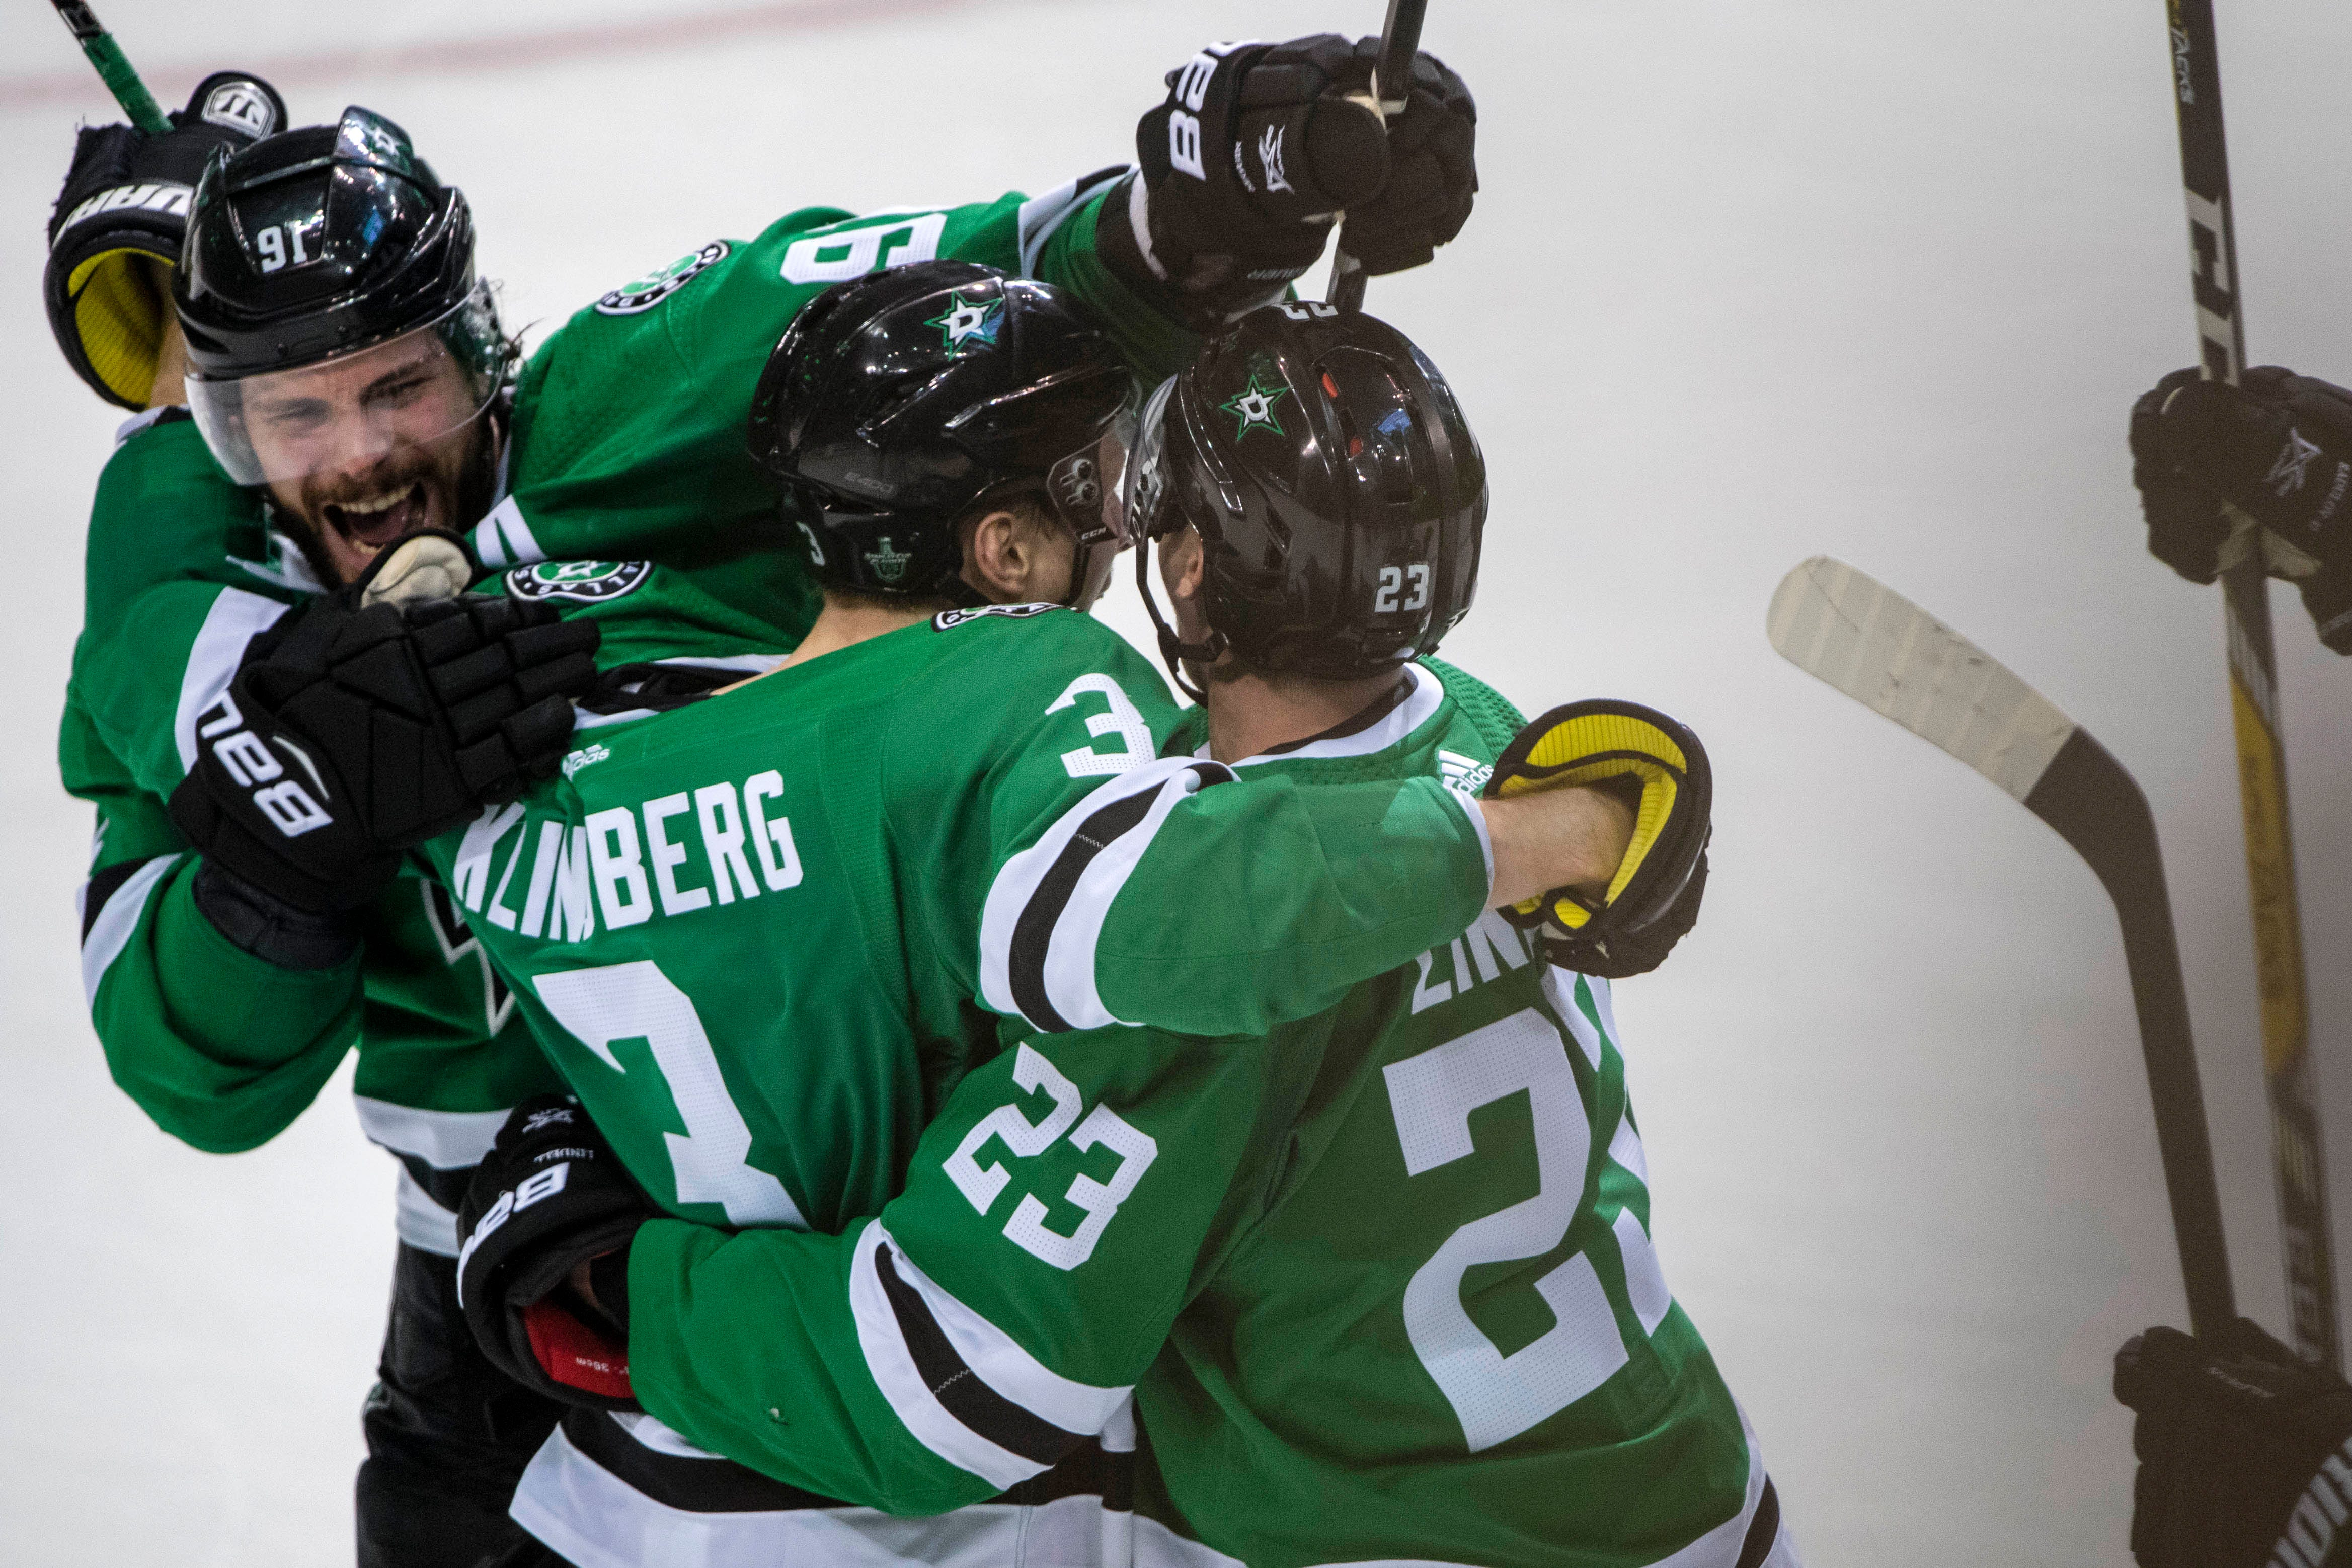 Once-berated Jamie Benn and Tyler Seguin lead Stars past Predators into second round